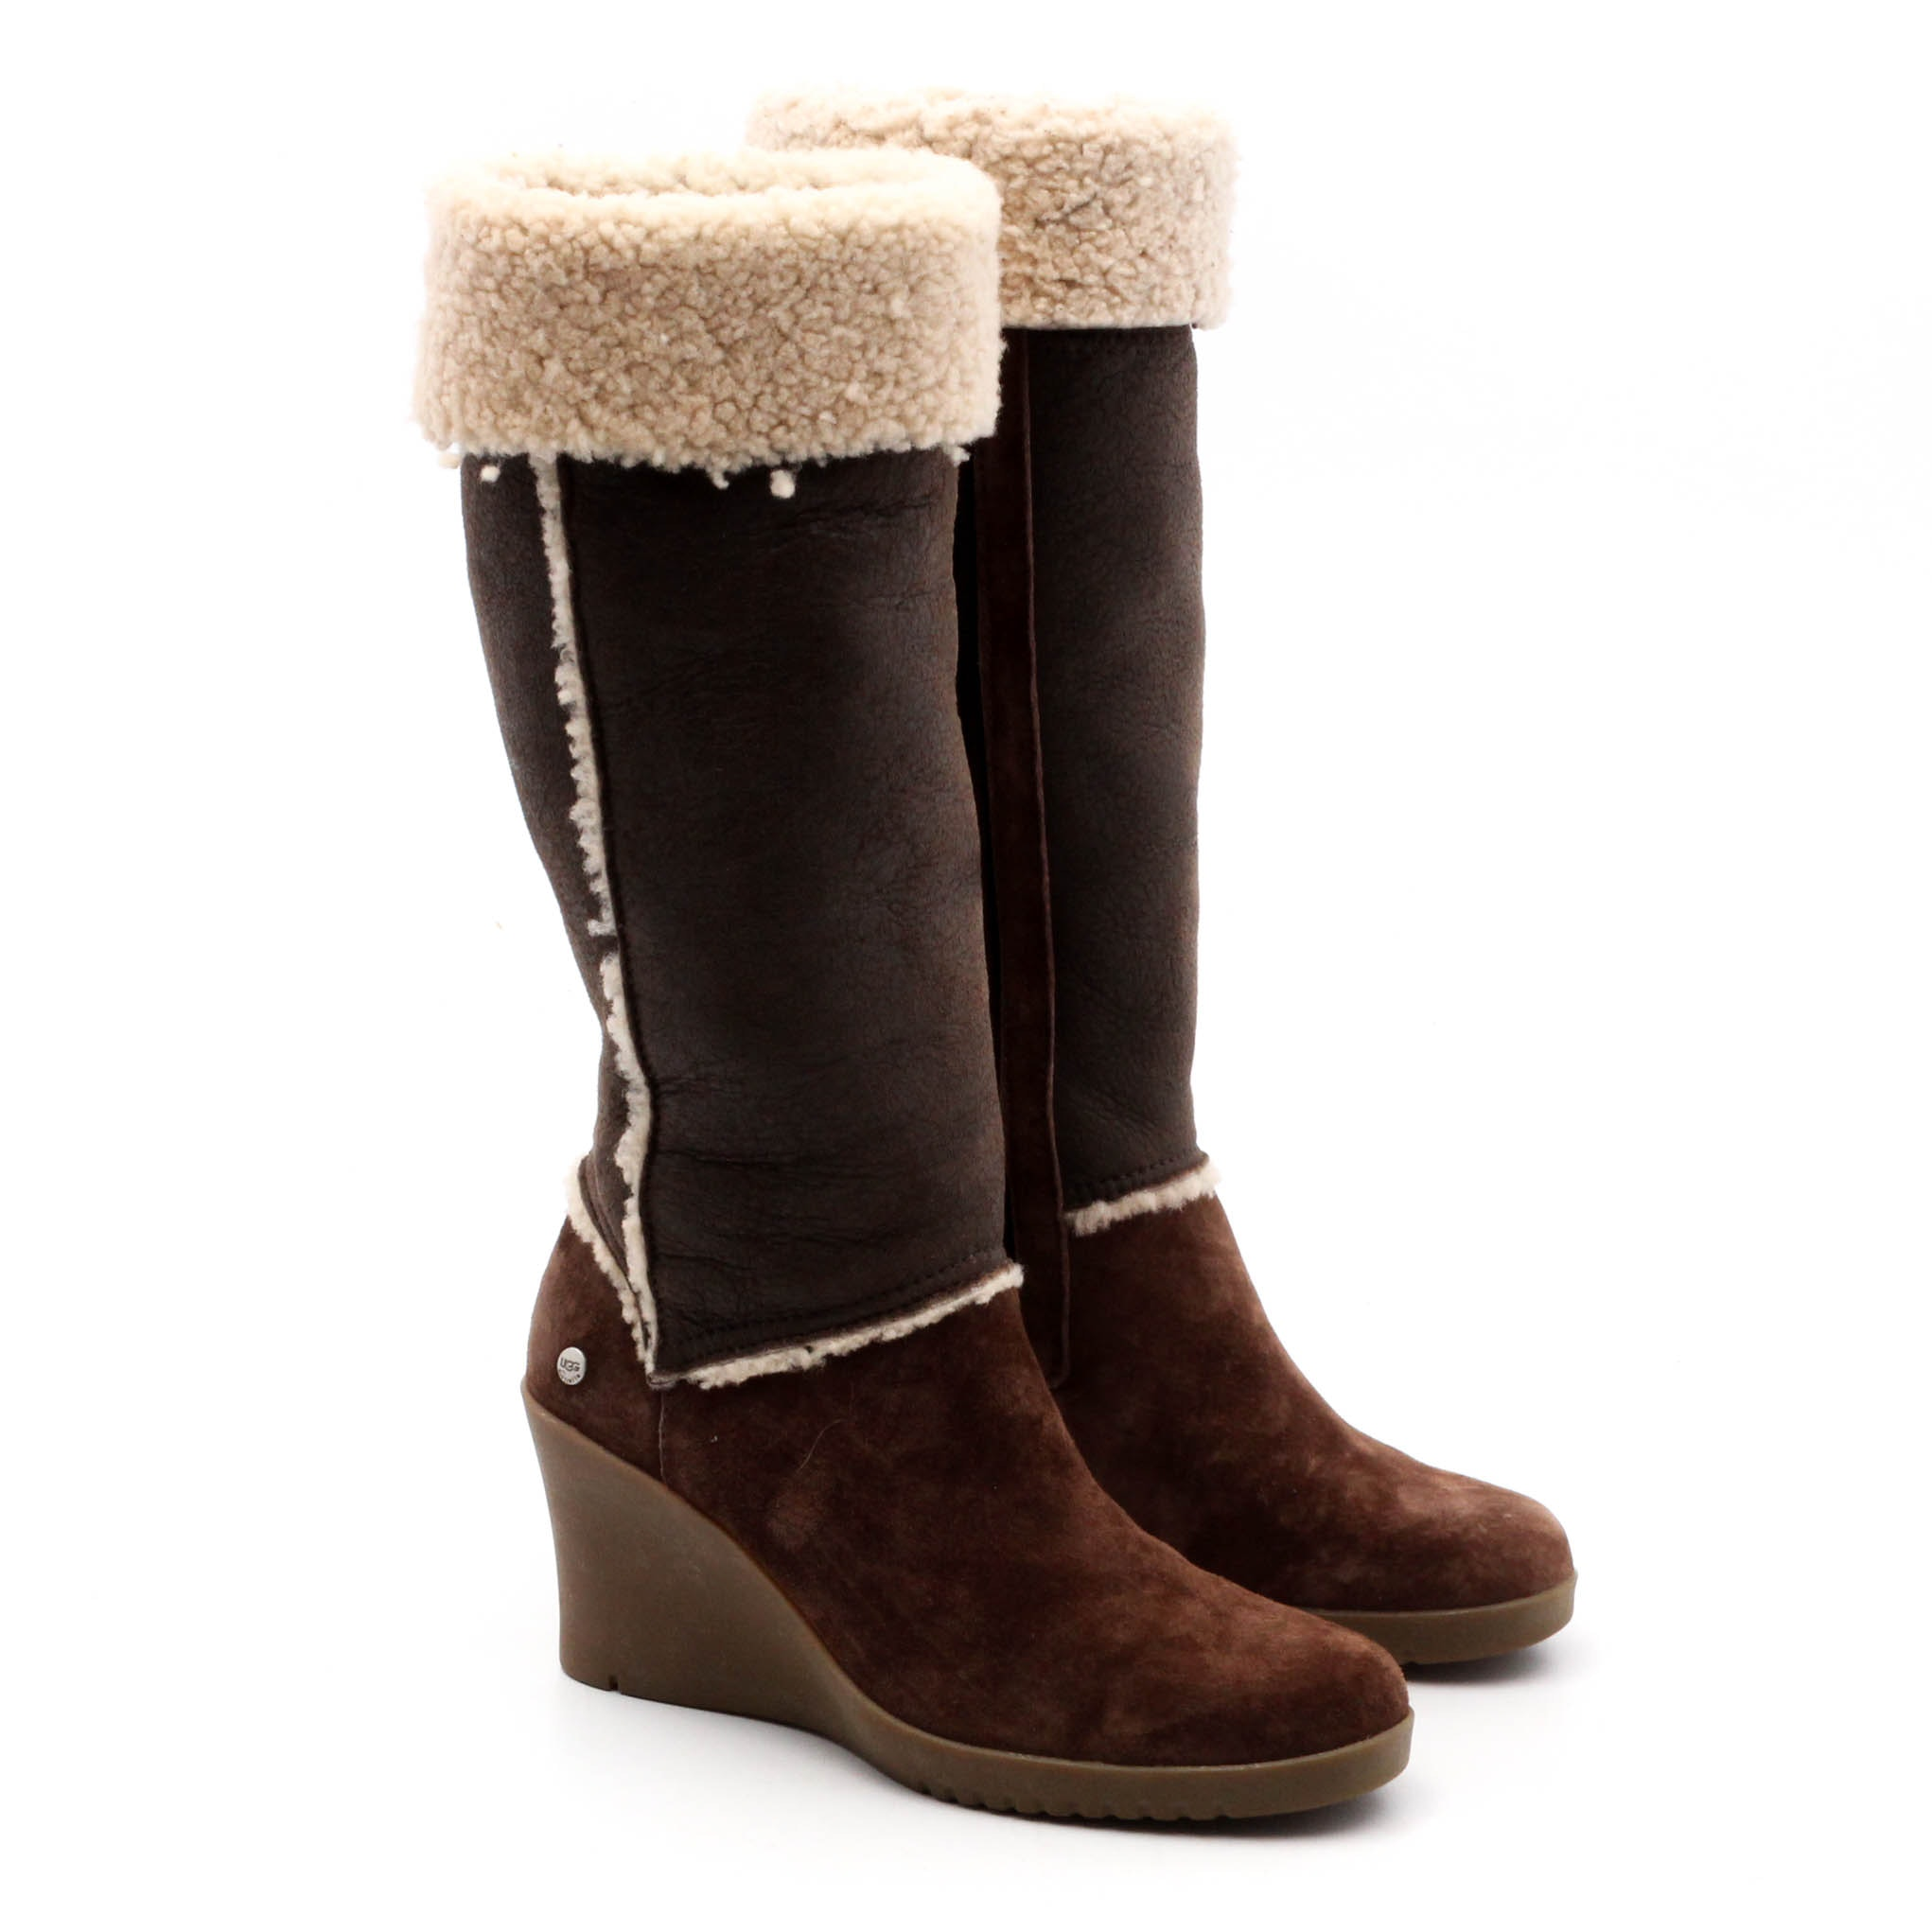 Women's UGG Australia Sandra Wedge Brown Suede and Shearling Heeled Boots